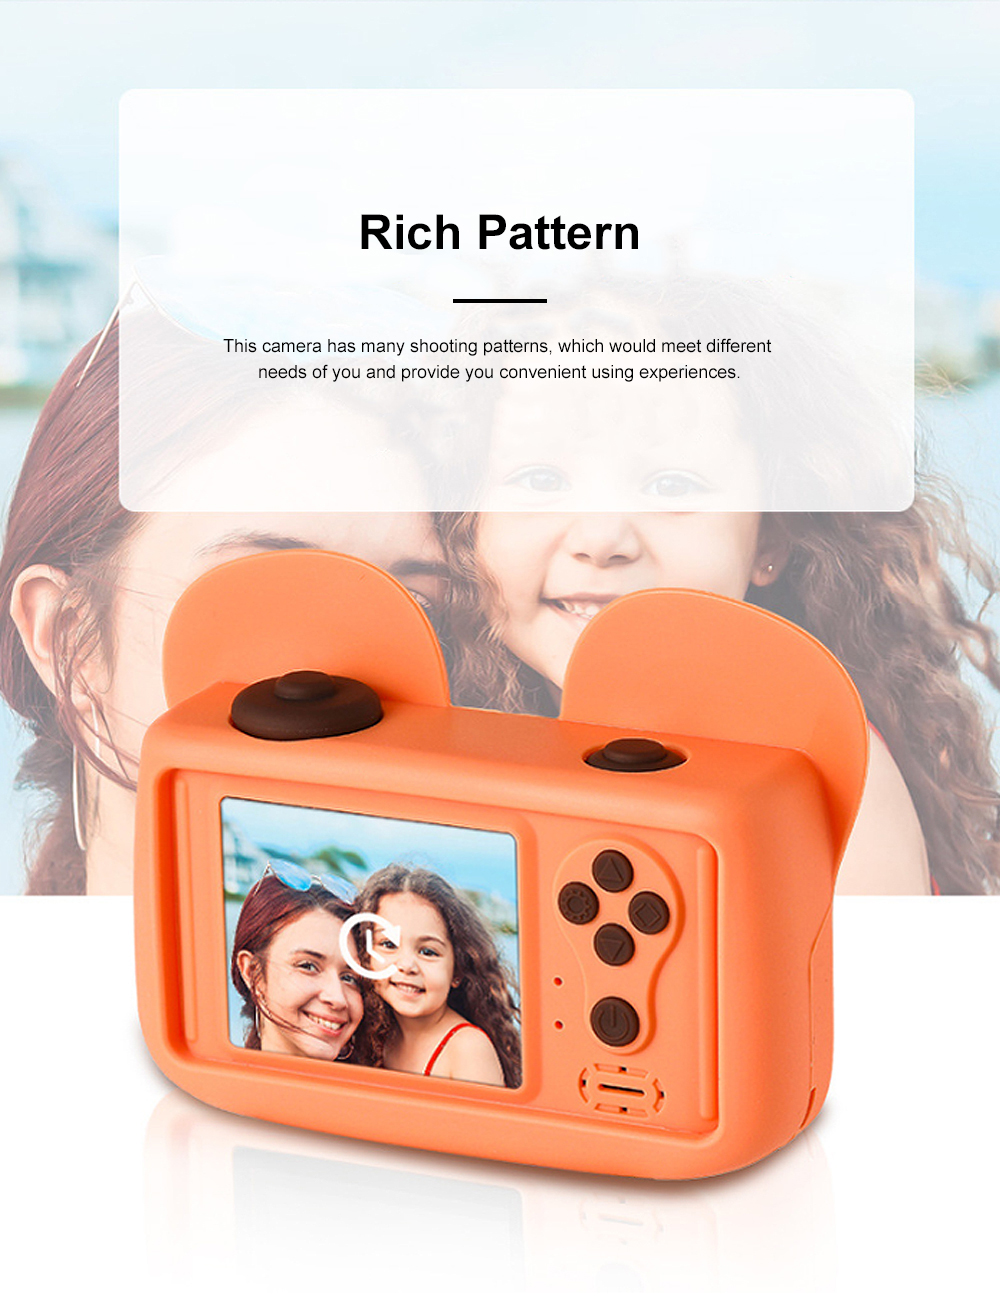 Cute Animal Model Mini Digital Camera for Children WIth Breaking-proof Silicone Shell 16G 1200W HD Pixel 2.0 inch Video Recorder Birthday Present 3